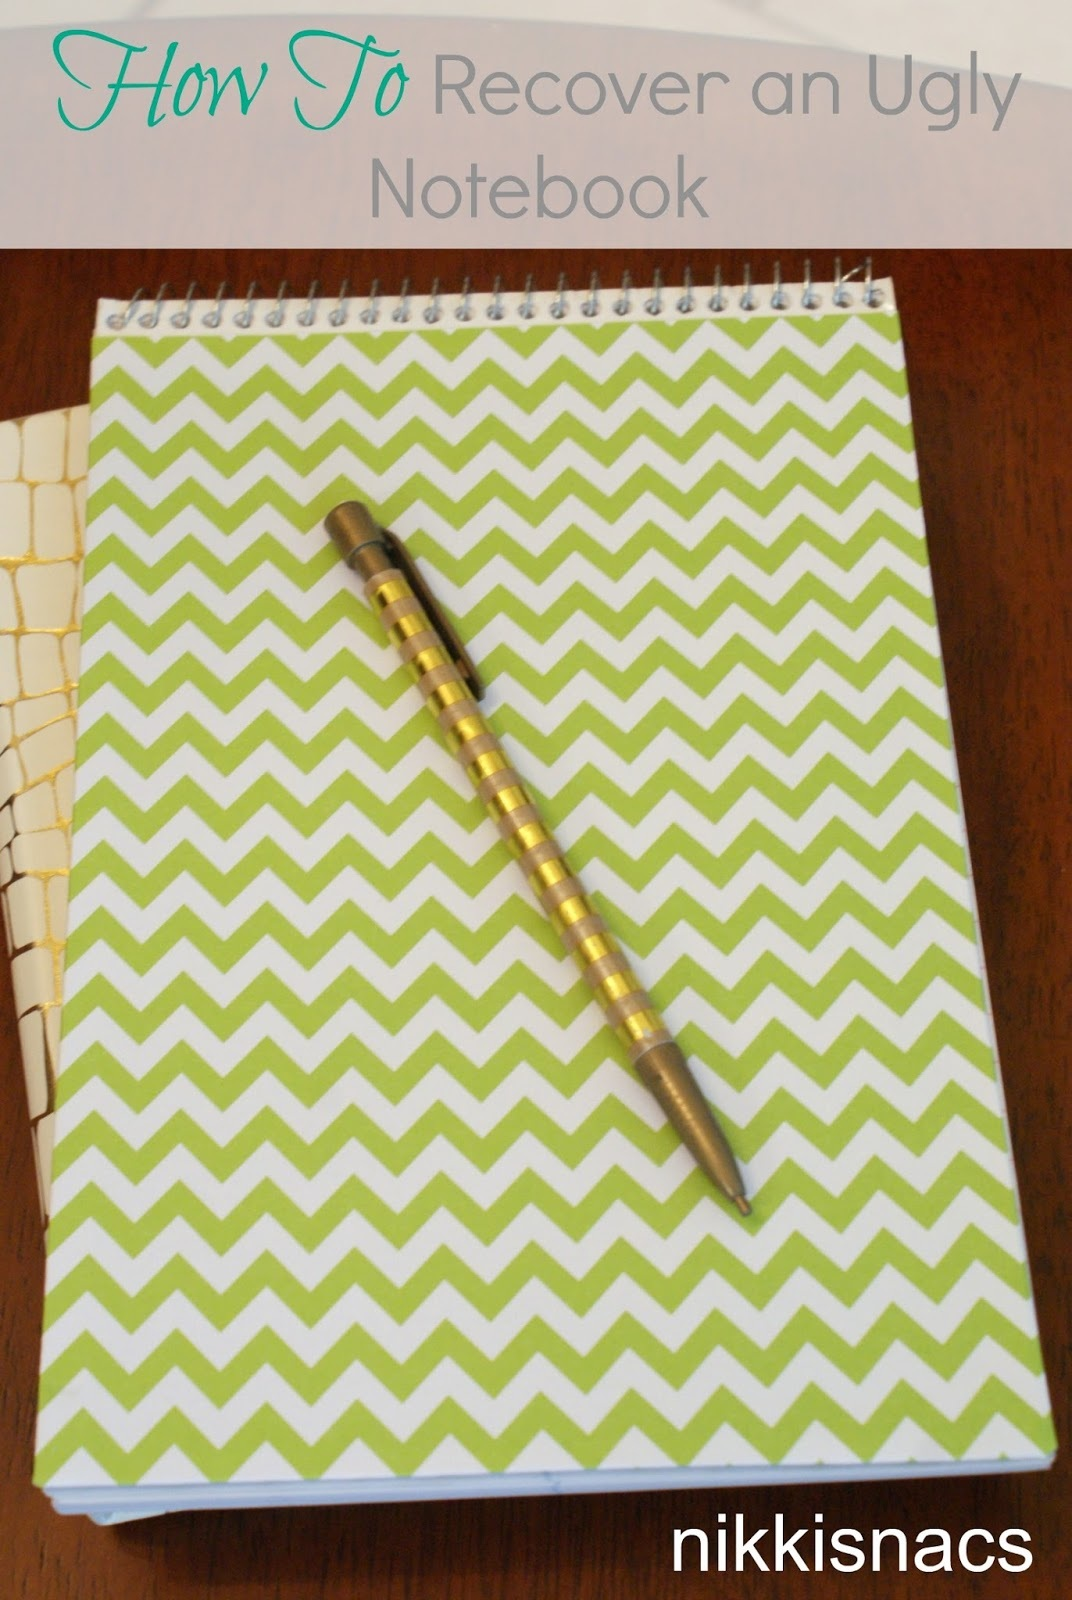 How To Recover an Ugly Notebook